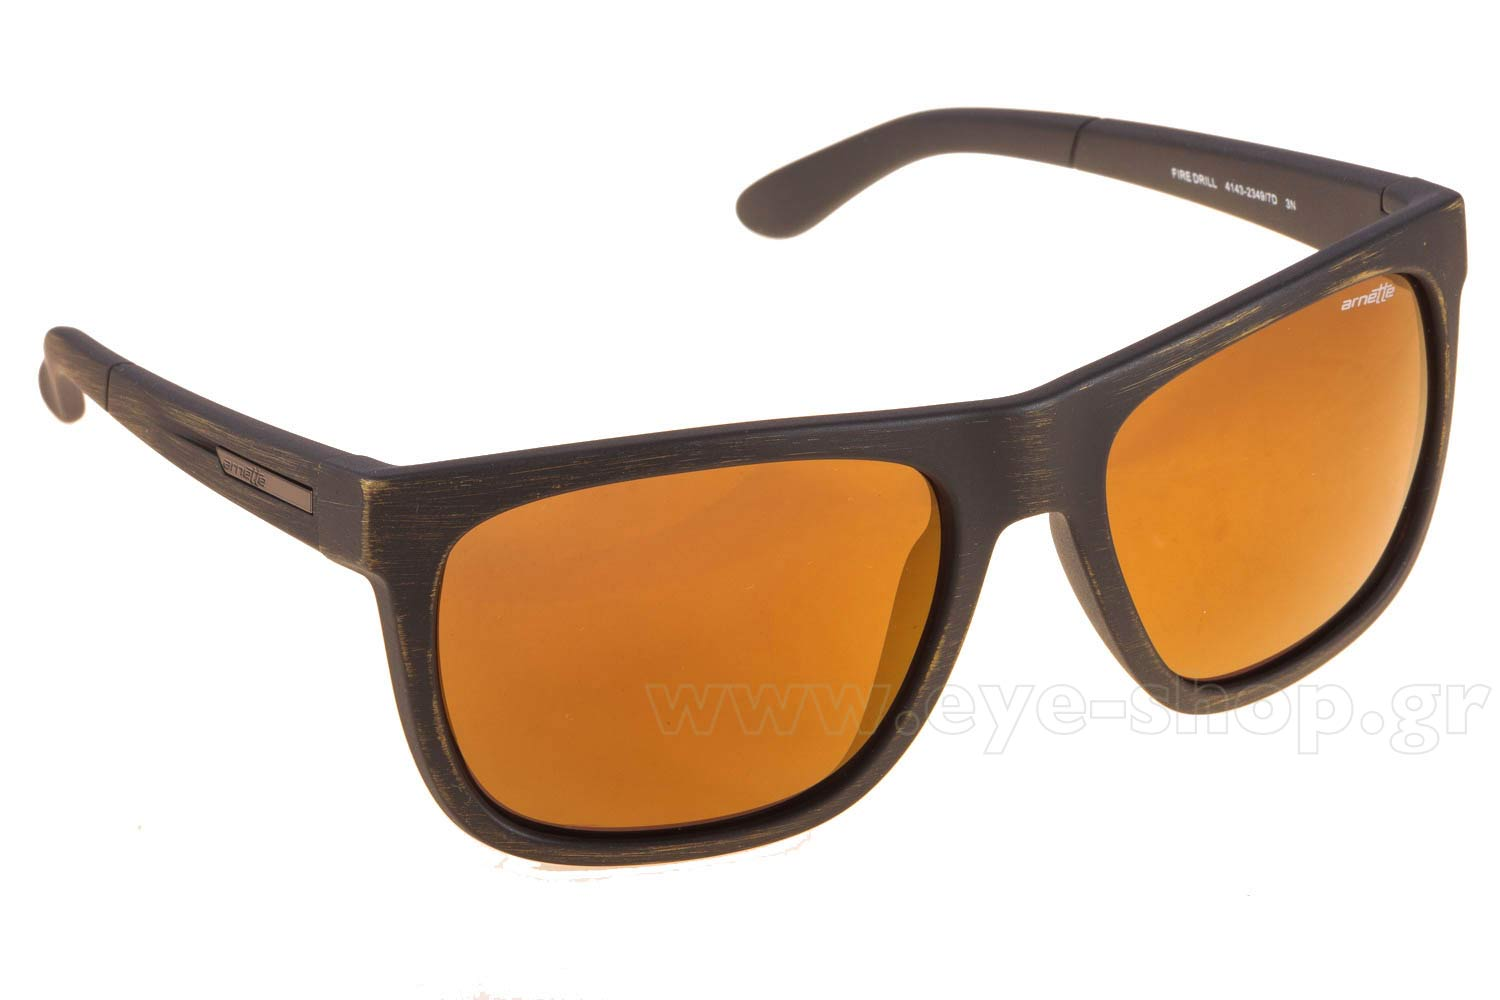 c773f186c4 SUNGLASSES Arnette Fire Drill 4143 23497D